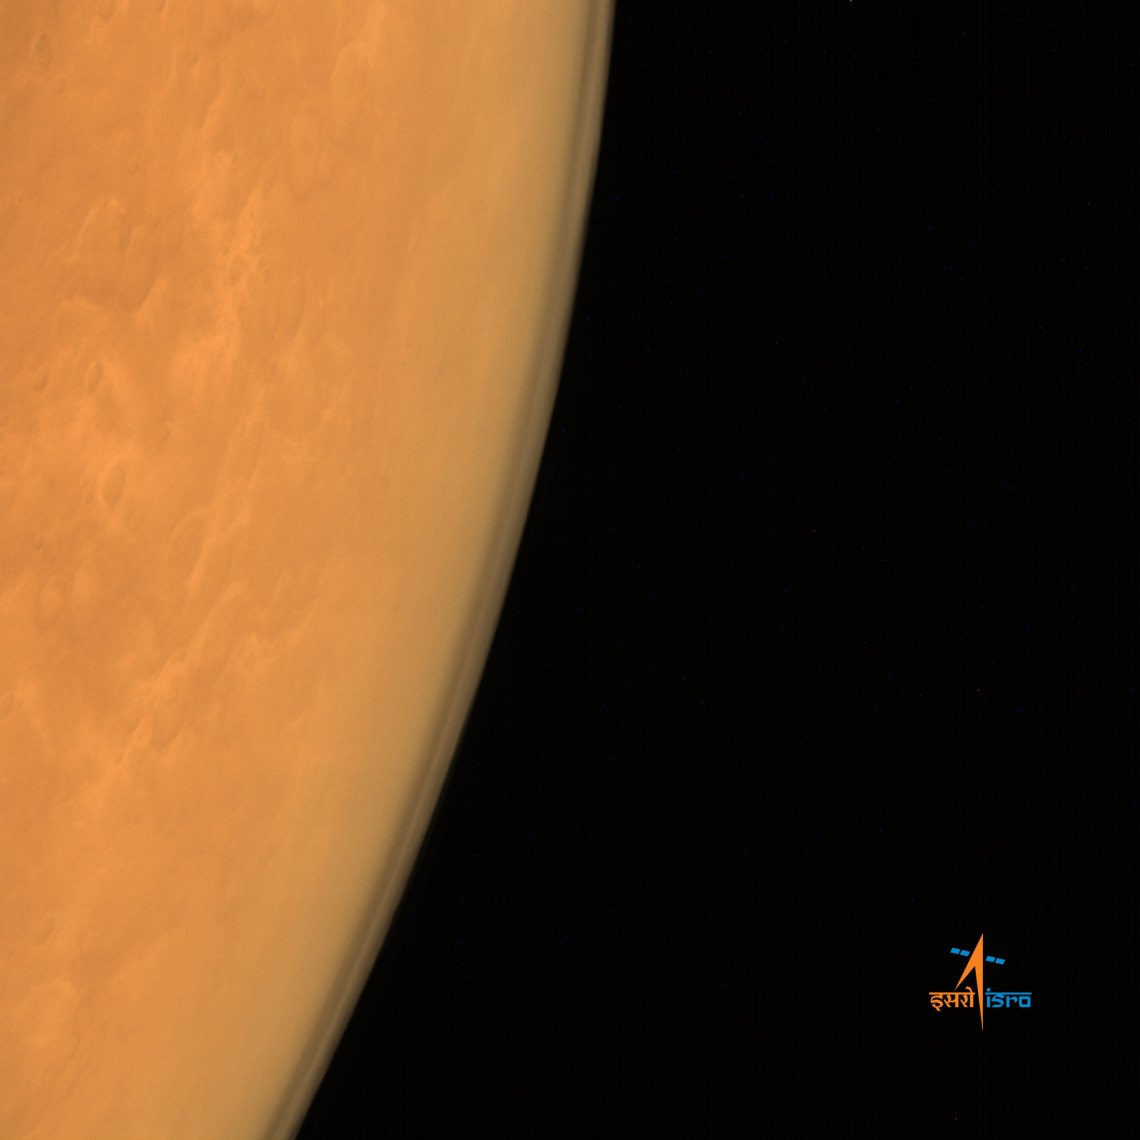 Taken using India's Mars Color Camera from an altitude of 8449 km, this image has a spatial resolution of 439 m and is centered around Lat: 20.01N, Lon:31.54E. Credit: ISRO